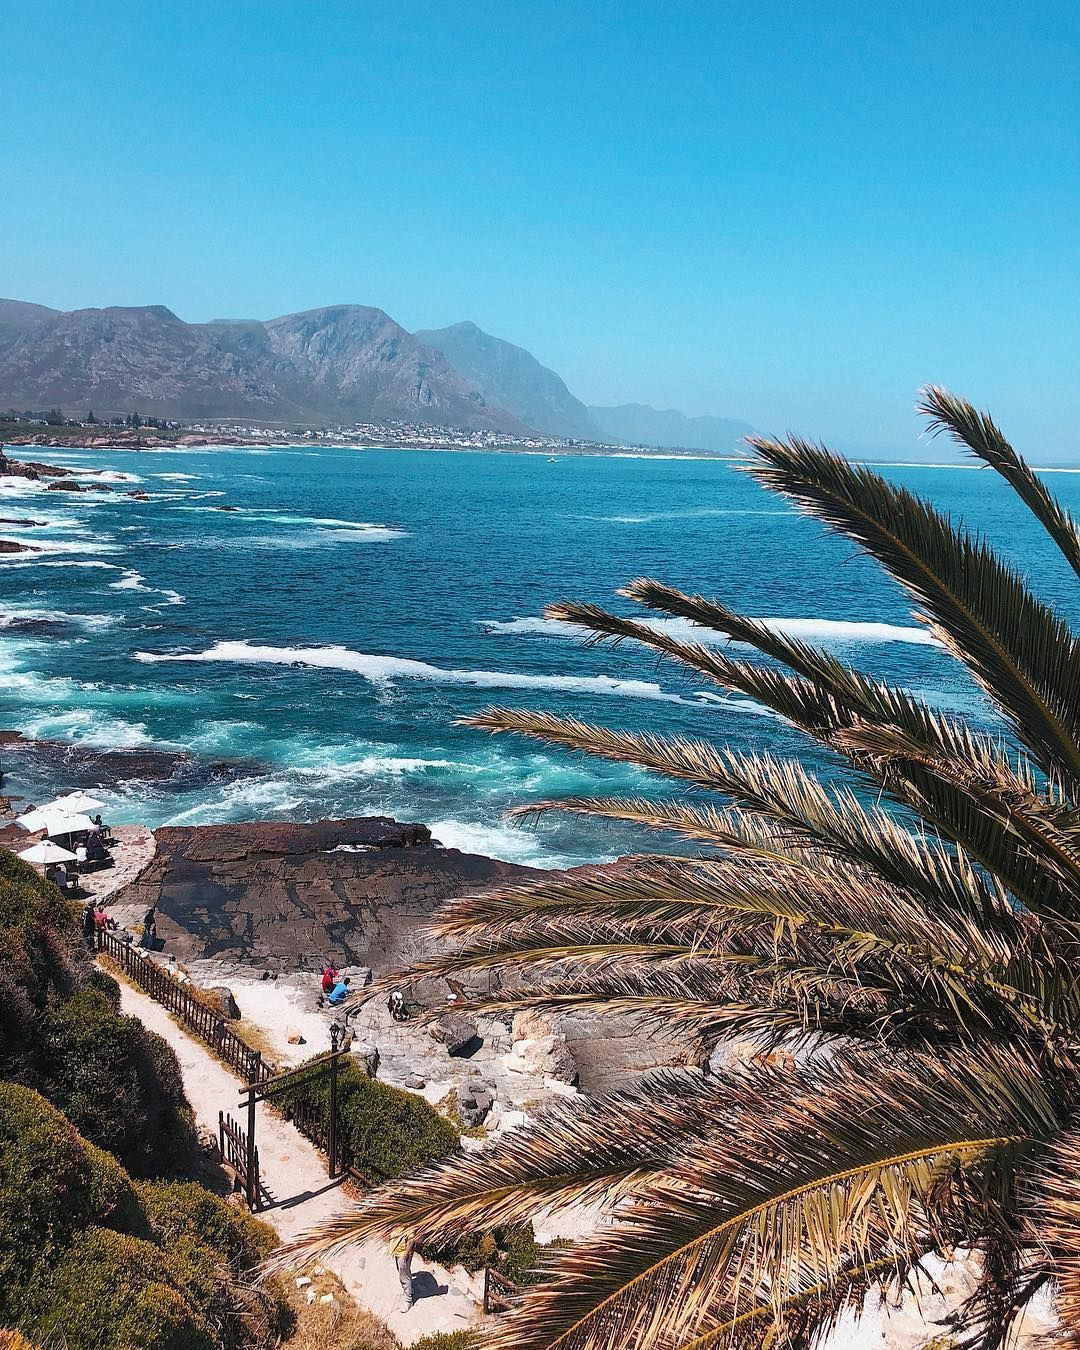 travel south africa Durban is part of Durban Travel Kwazulu Natal South Africa Lonely Planet - P a r a d i s e 🌴 Hermanus, South Africa 🇿🇦 KareninaEnSudáfrica  trip wanderlust travel southafrica paradise view beach roadtrip westerncape gardenroute hermanus